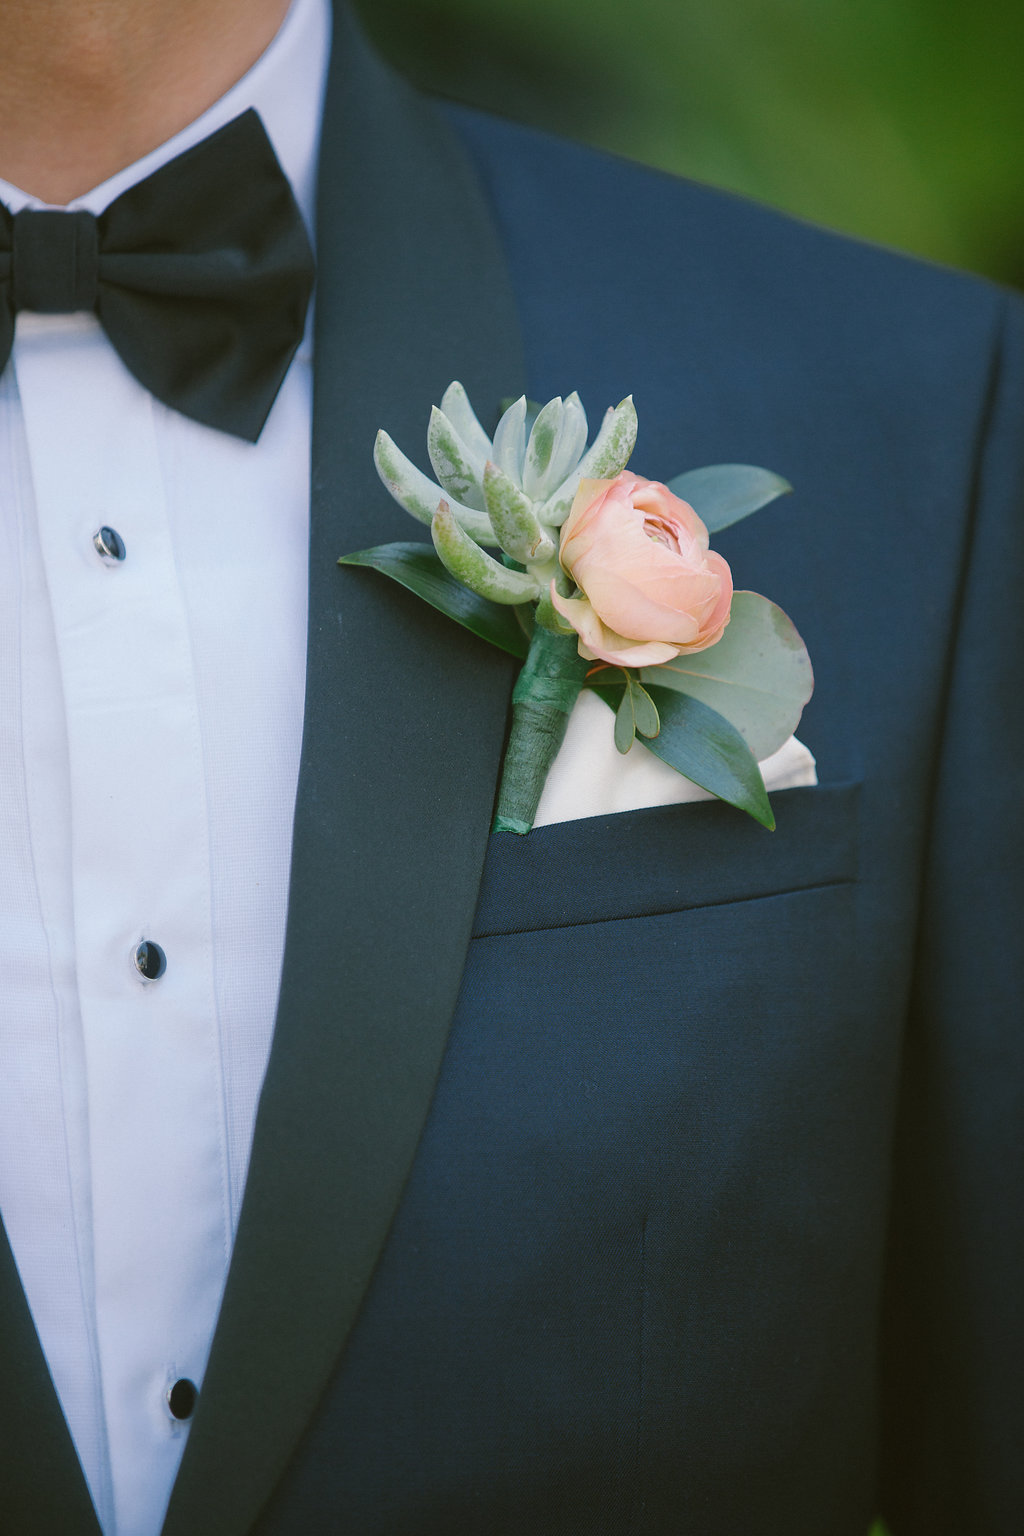 Groom Florida Wedding Portrait in Navy Blue Tuxedo and Blush Pink and Succulent Boutonniere | Tampa Bay Photographer Kera Photography